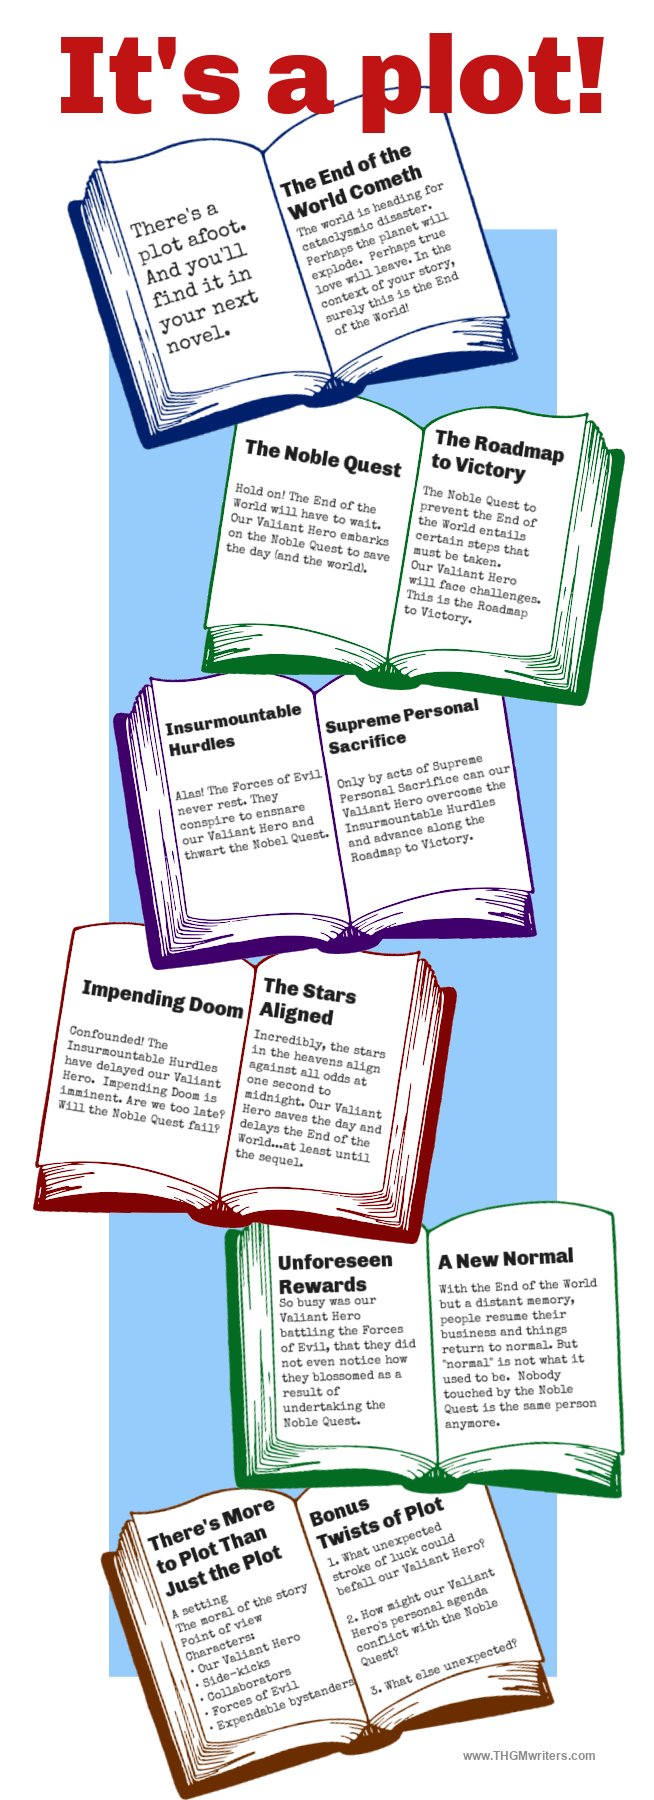 Infographic on how to write the plot of a story